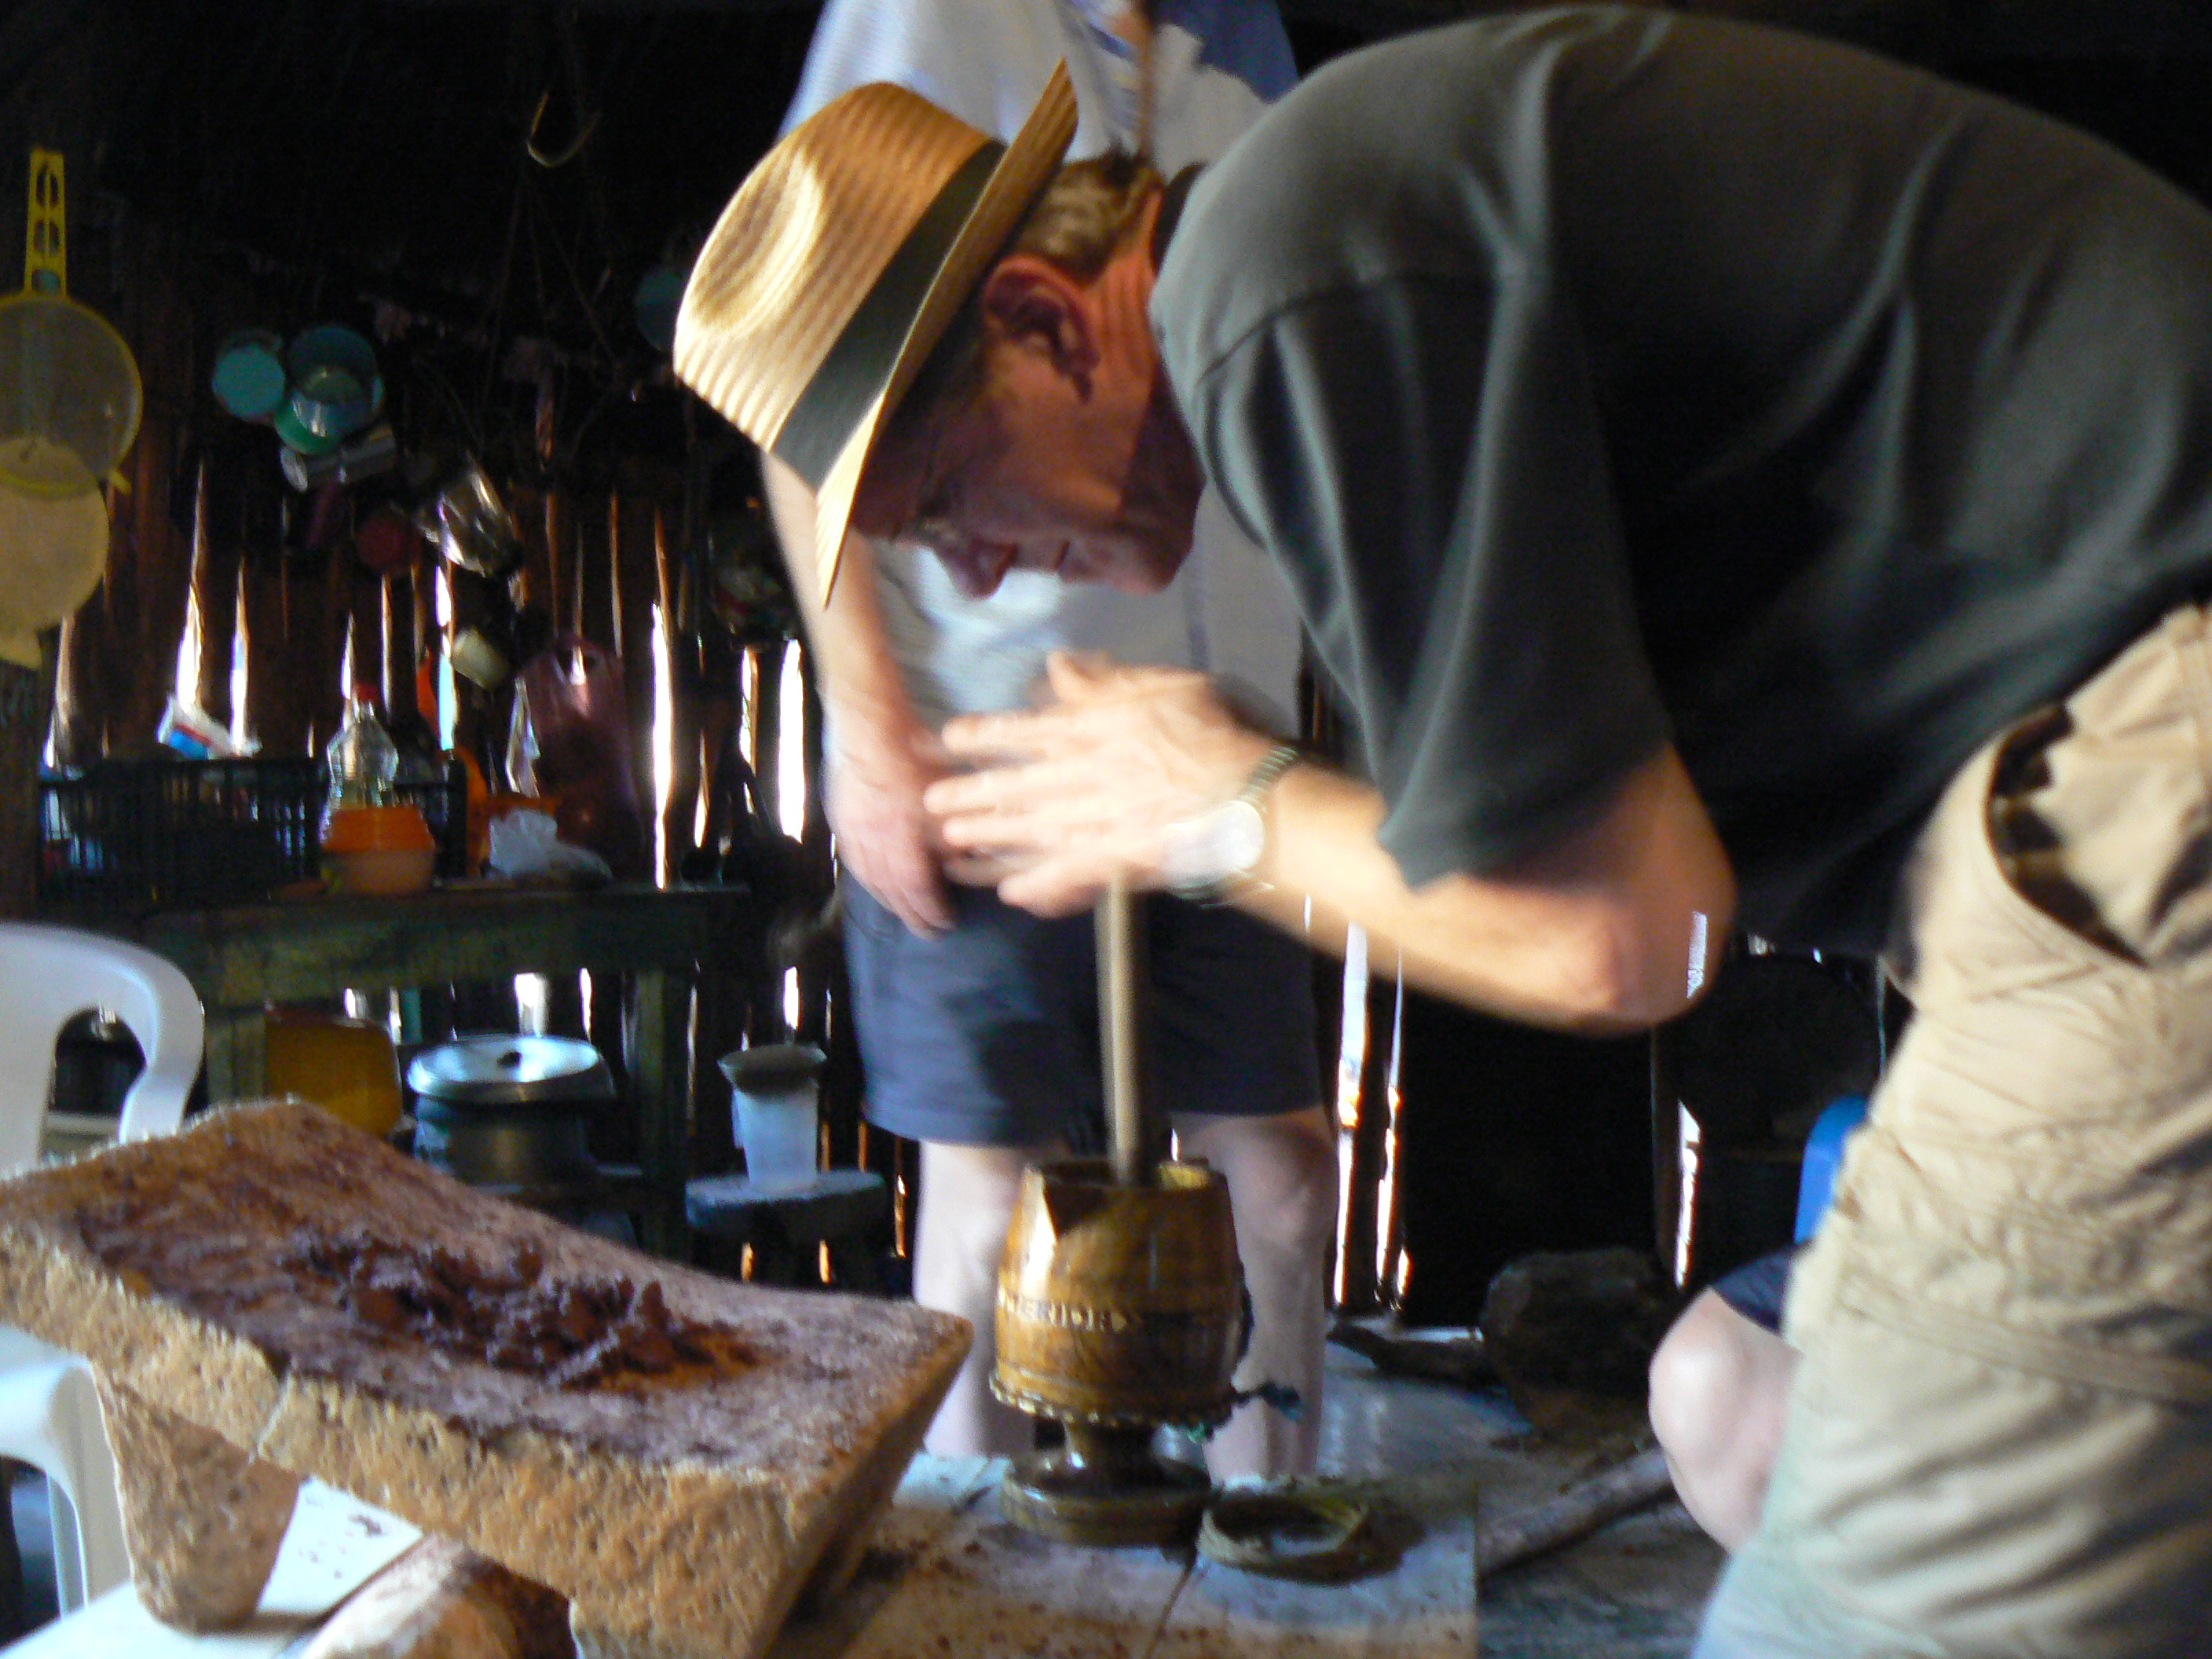 making cocoa in the tradtional Mayan way.